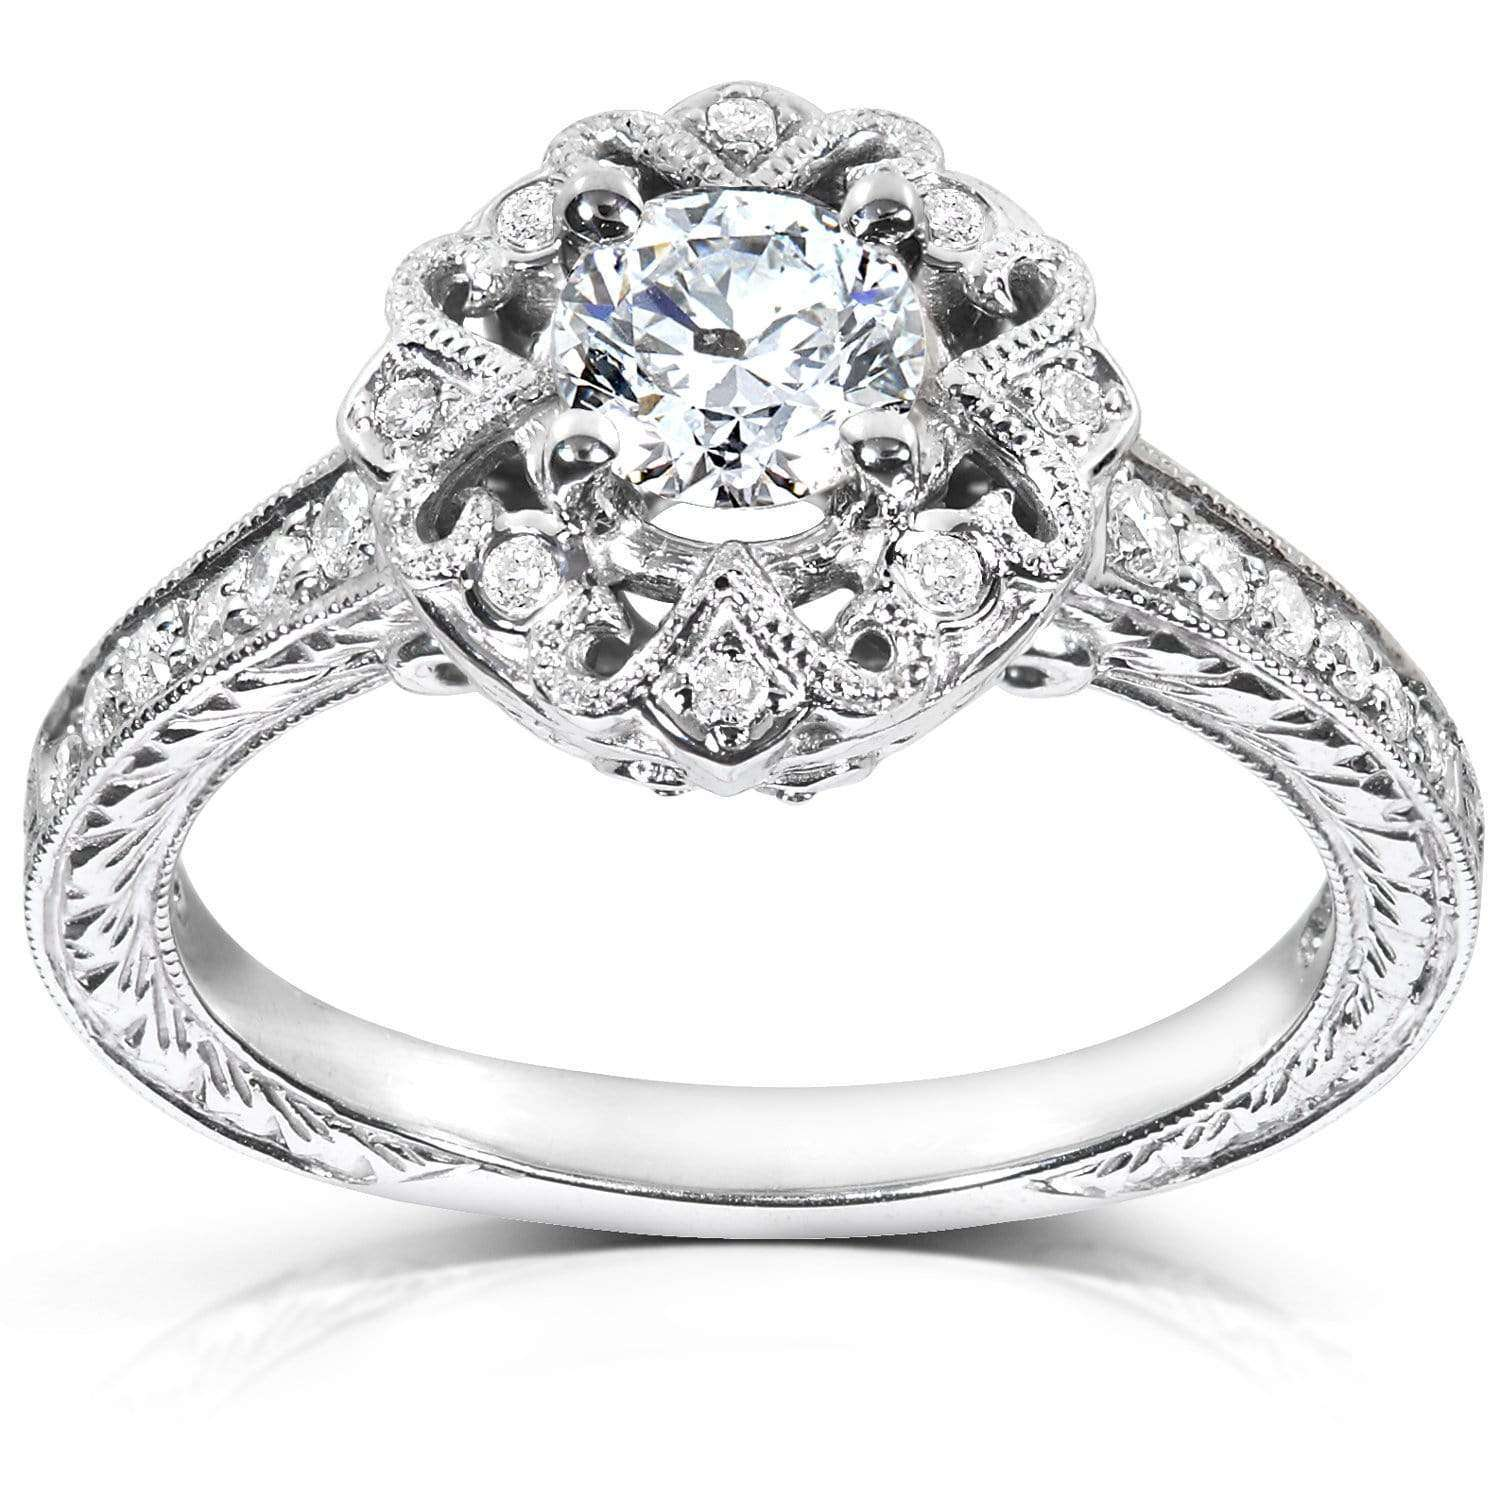 Coupons Antique Diamond Engagement Ring 1/2 carat (ctw) in 14k White Gold - 5.5